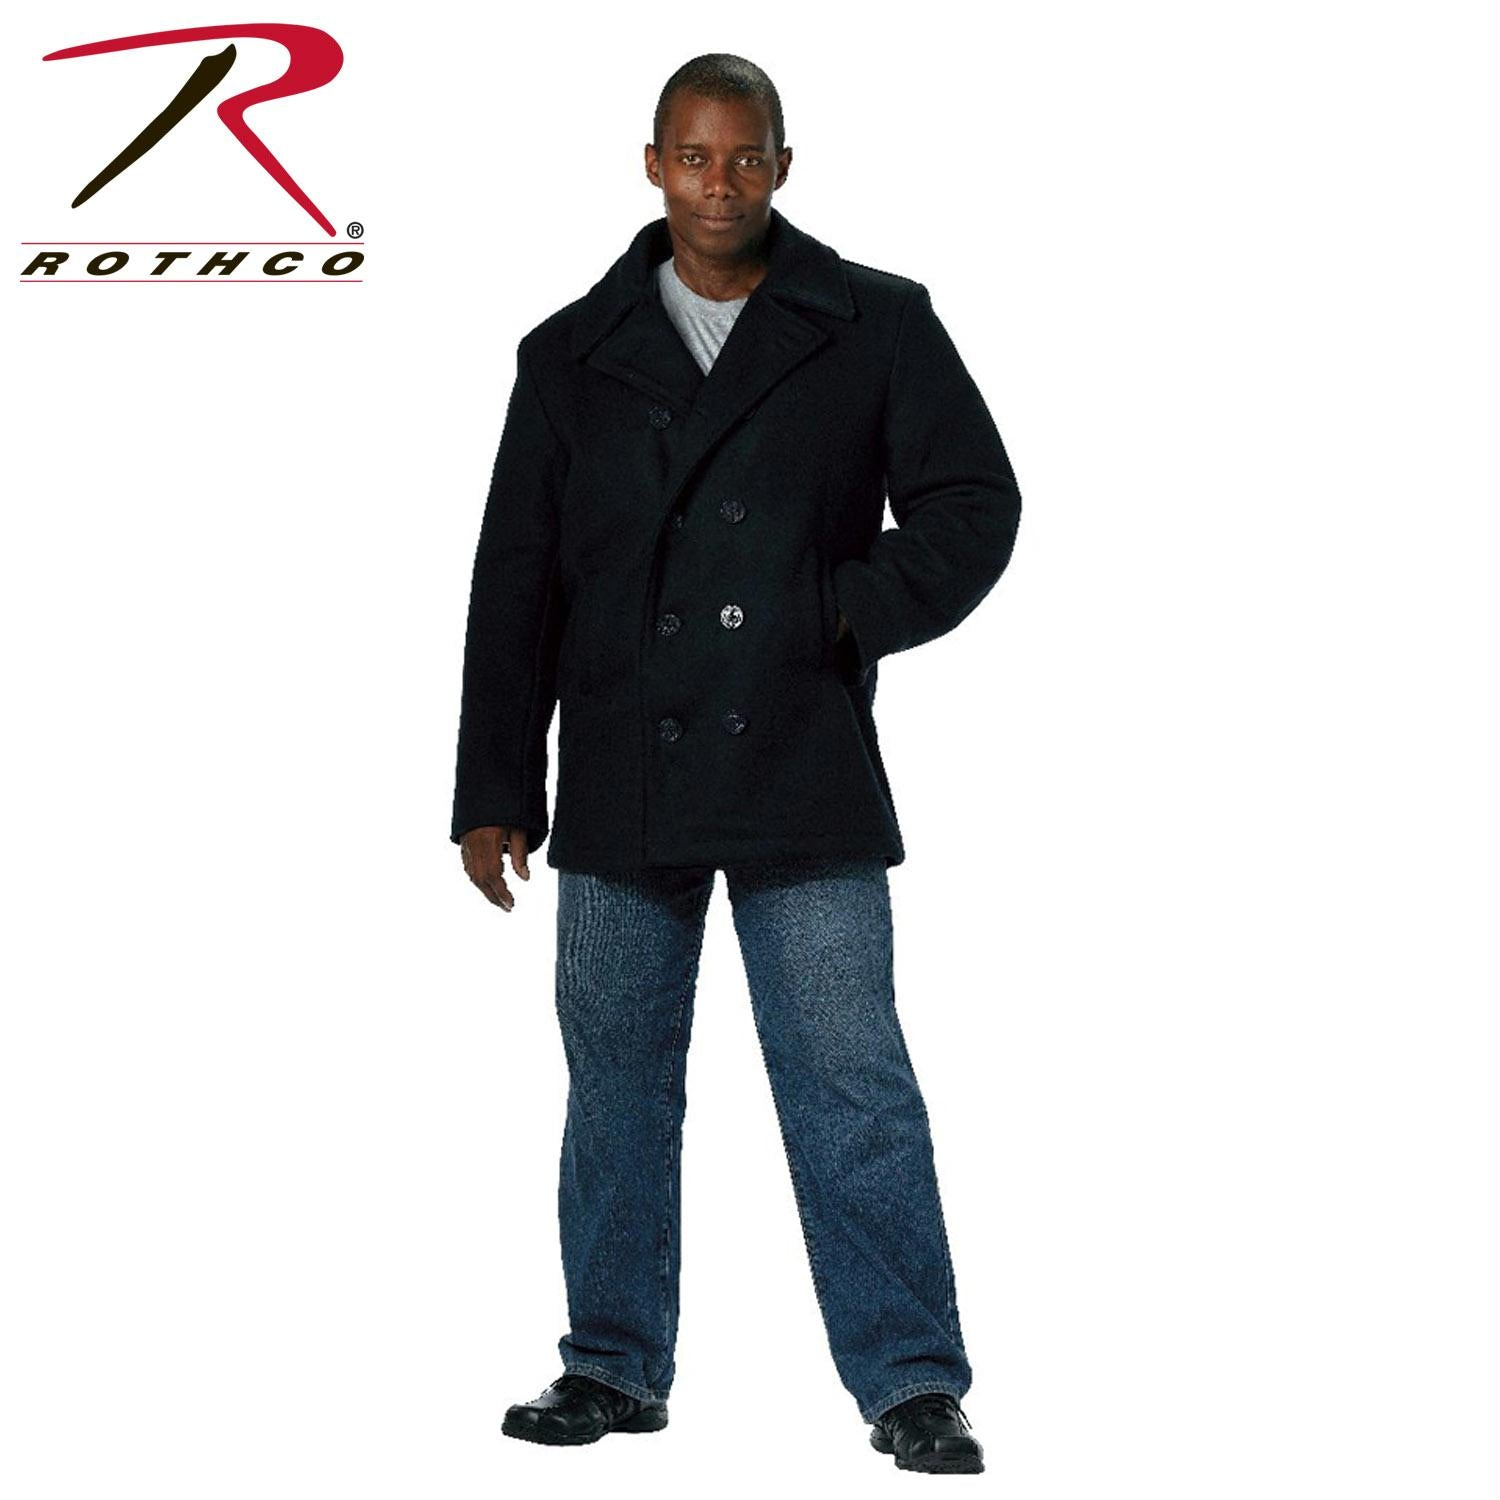 Rothco US Navy Type Pea Coat - Navy Blue / XS